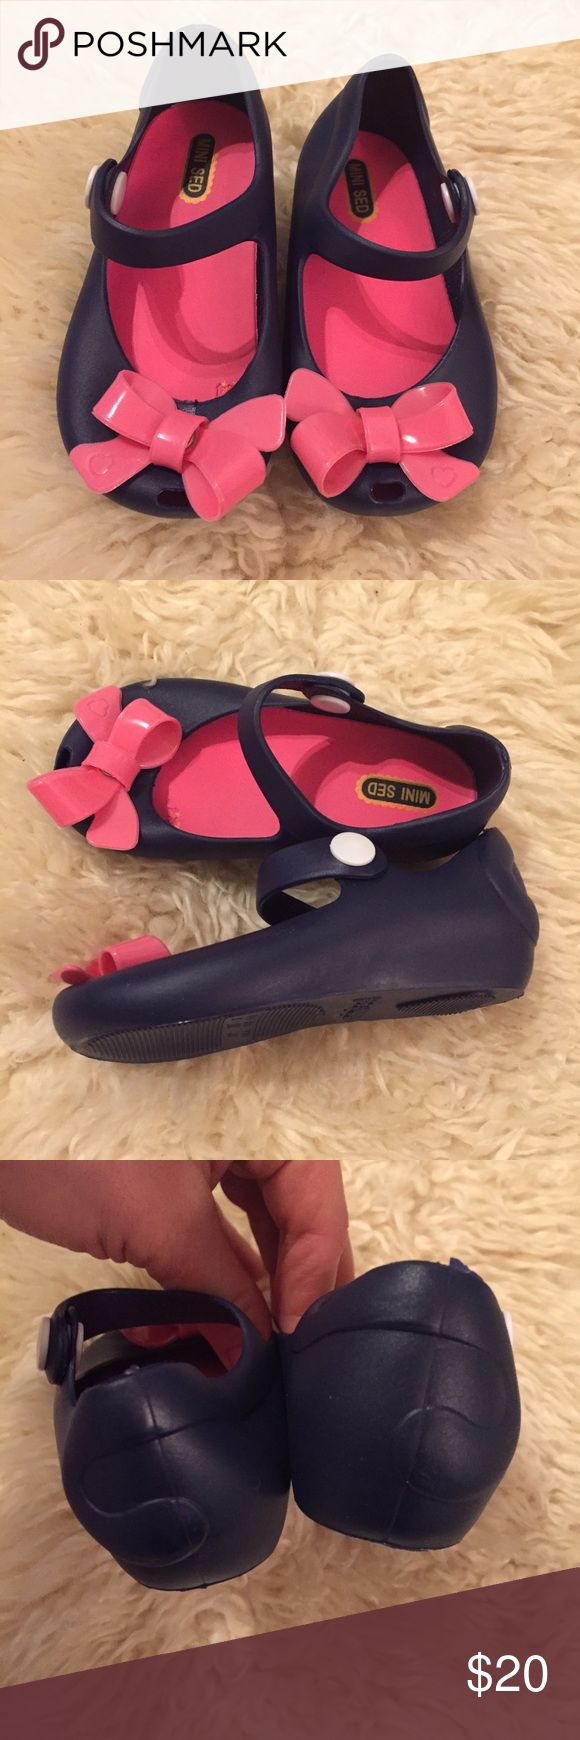 NEW toddler shoes Very cute, navy blue with pink bow NEW toddler shoes, size 6 Shoes Dress Shoes